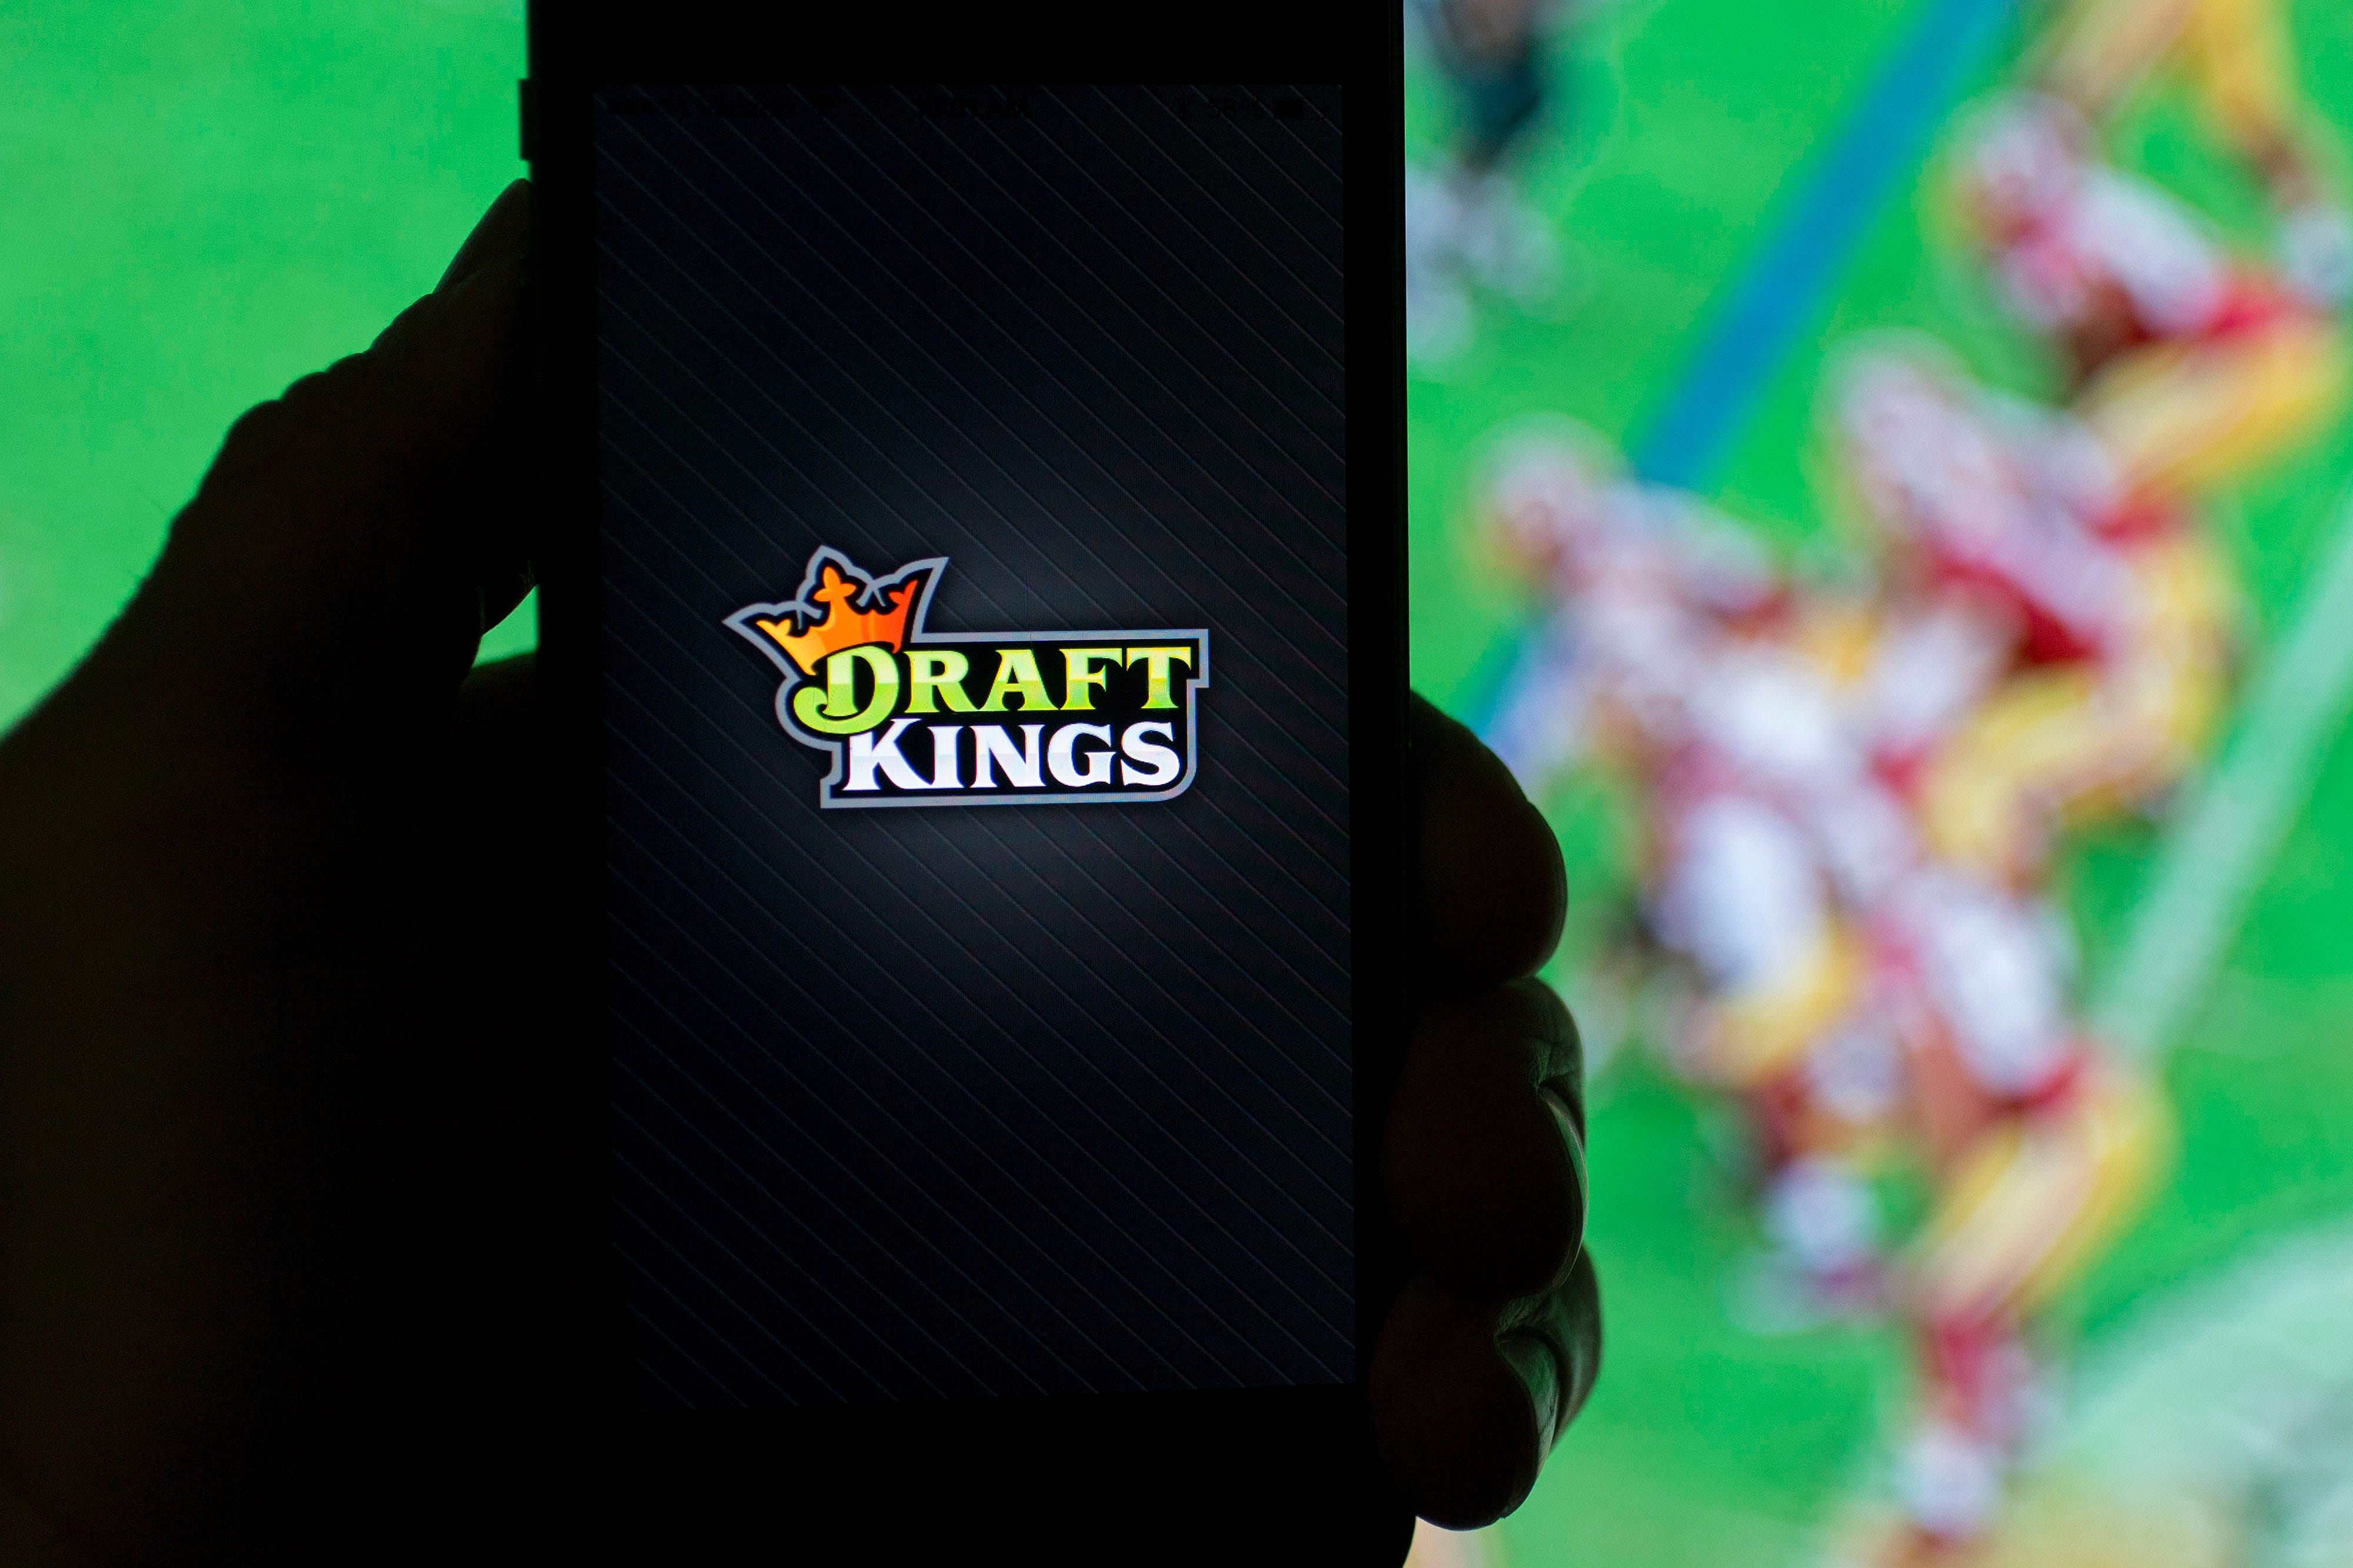 After failed merger, fantasy sports site DraftKings looks to rebound with sports fans